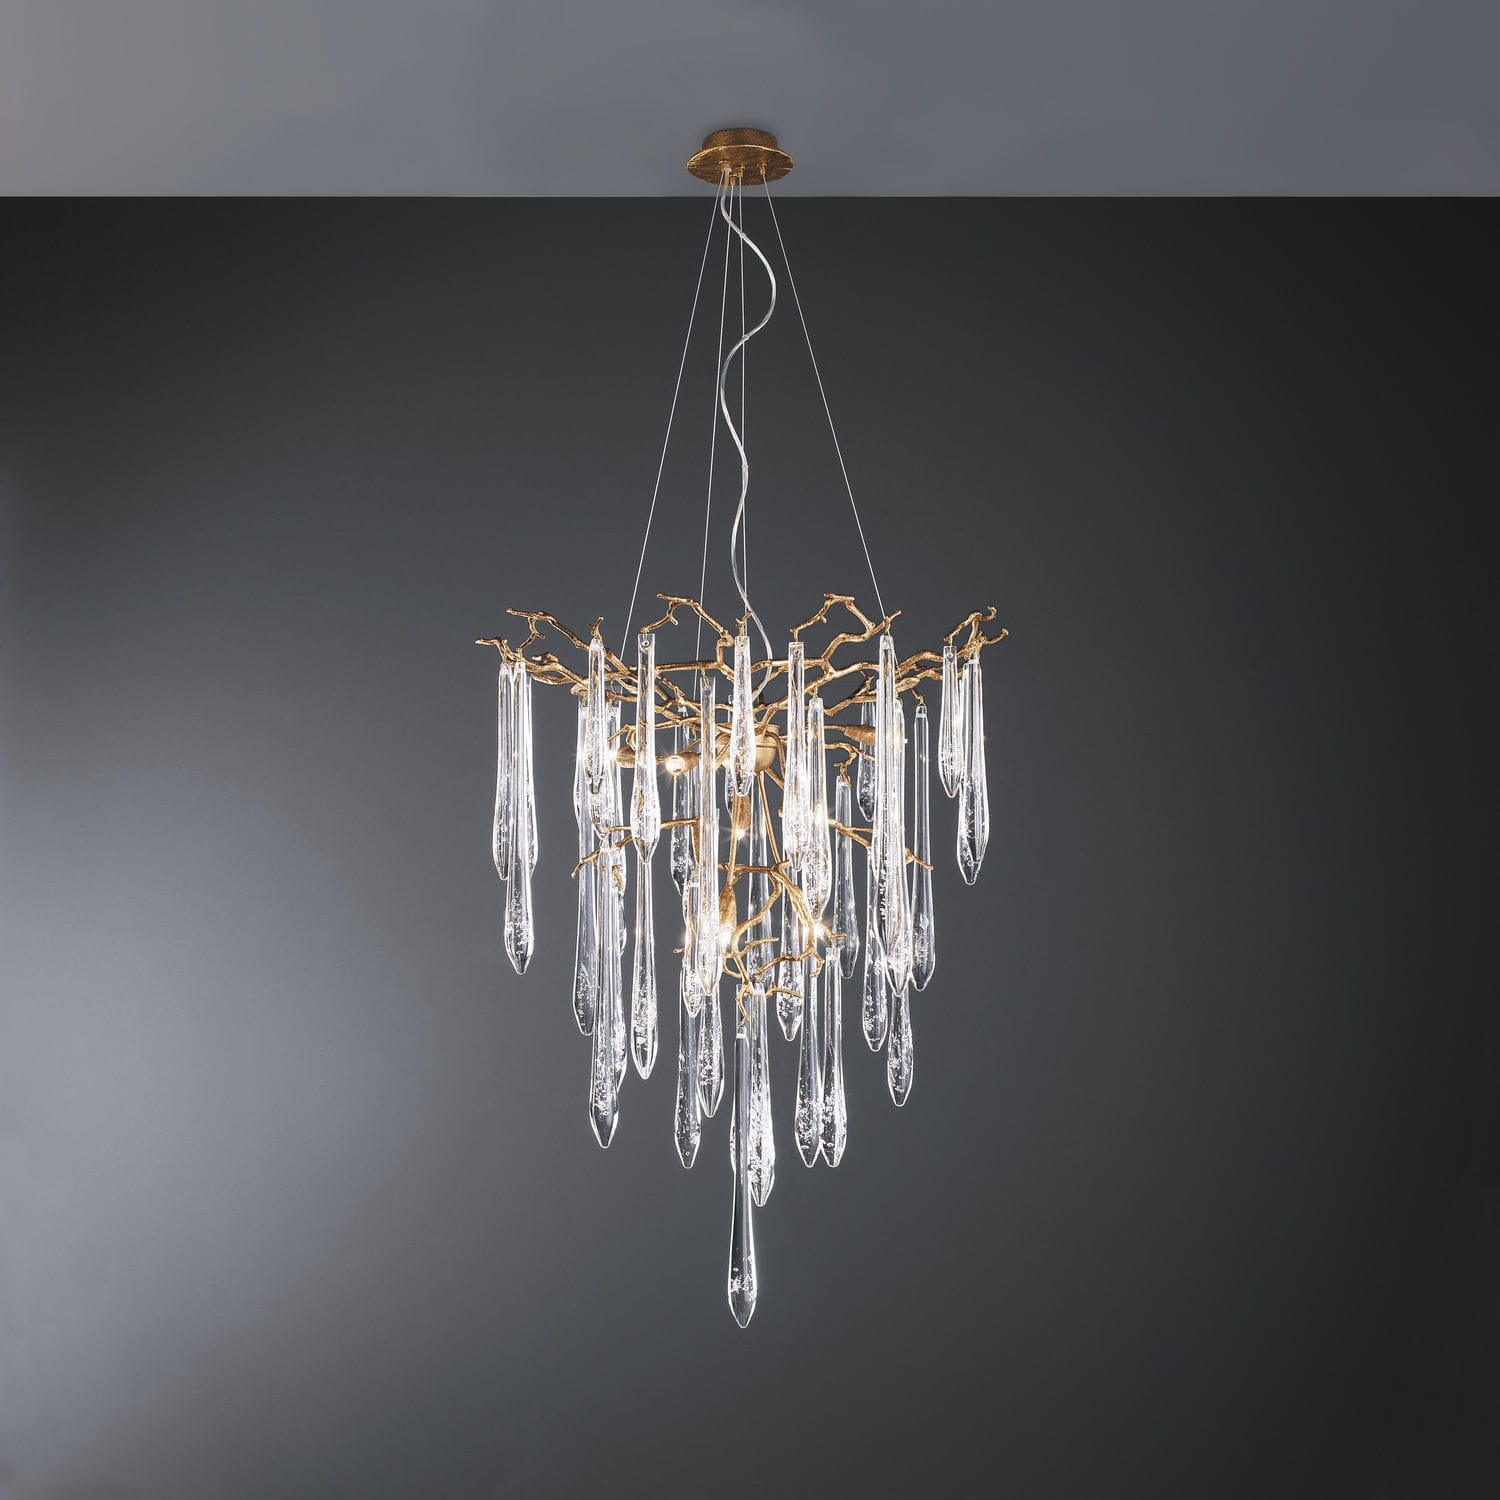 Traditional chandelier glass bronze halogen aqua ct32598 traditional chandelier glass bronze halogen aqua ct32598 arubaitofo Image collections